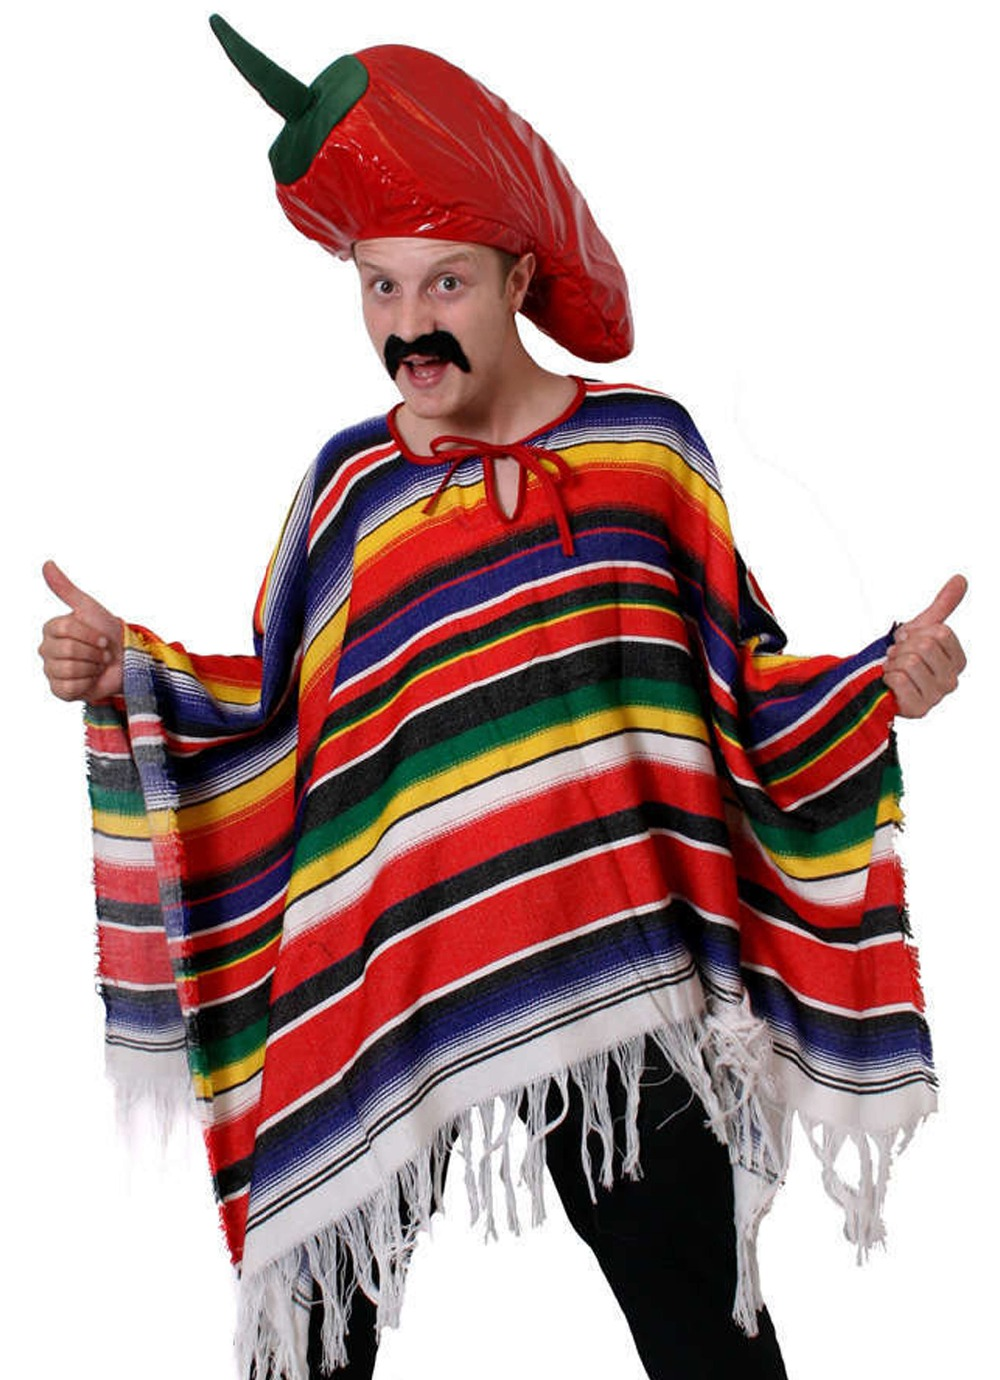 MEXICAN MAN CHILL HAT COSTUME MULTI-COLOURED STRIPED PONCHO MEXICO PARTY WILD WESTERN BANDIT FANCY DRESS WEST OUTFIT ONE SIZE